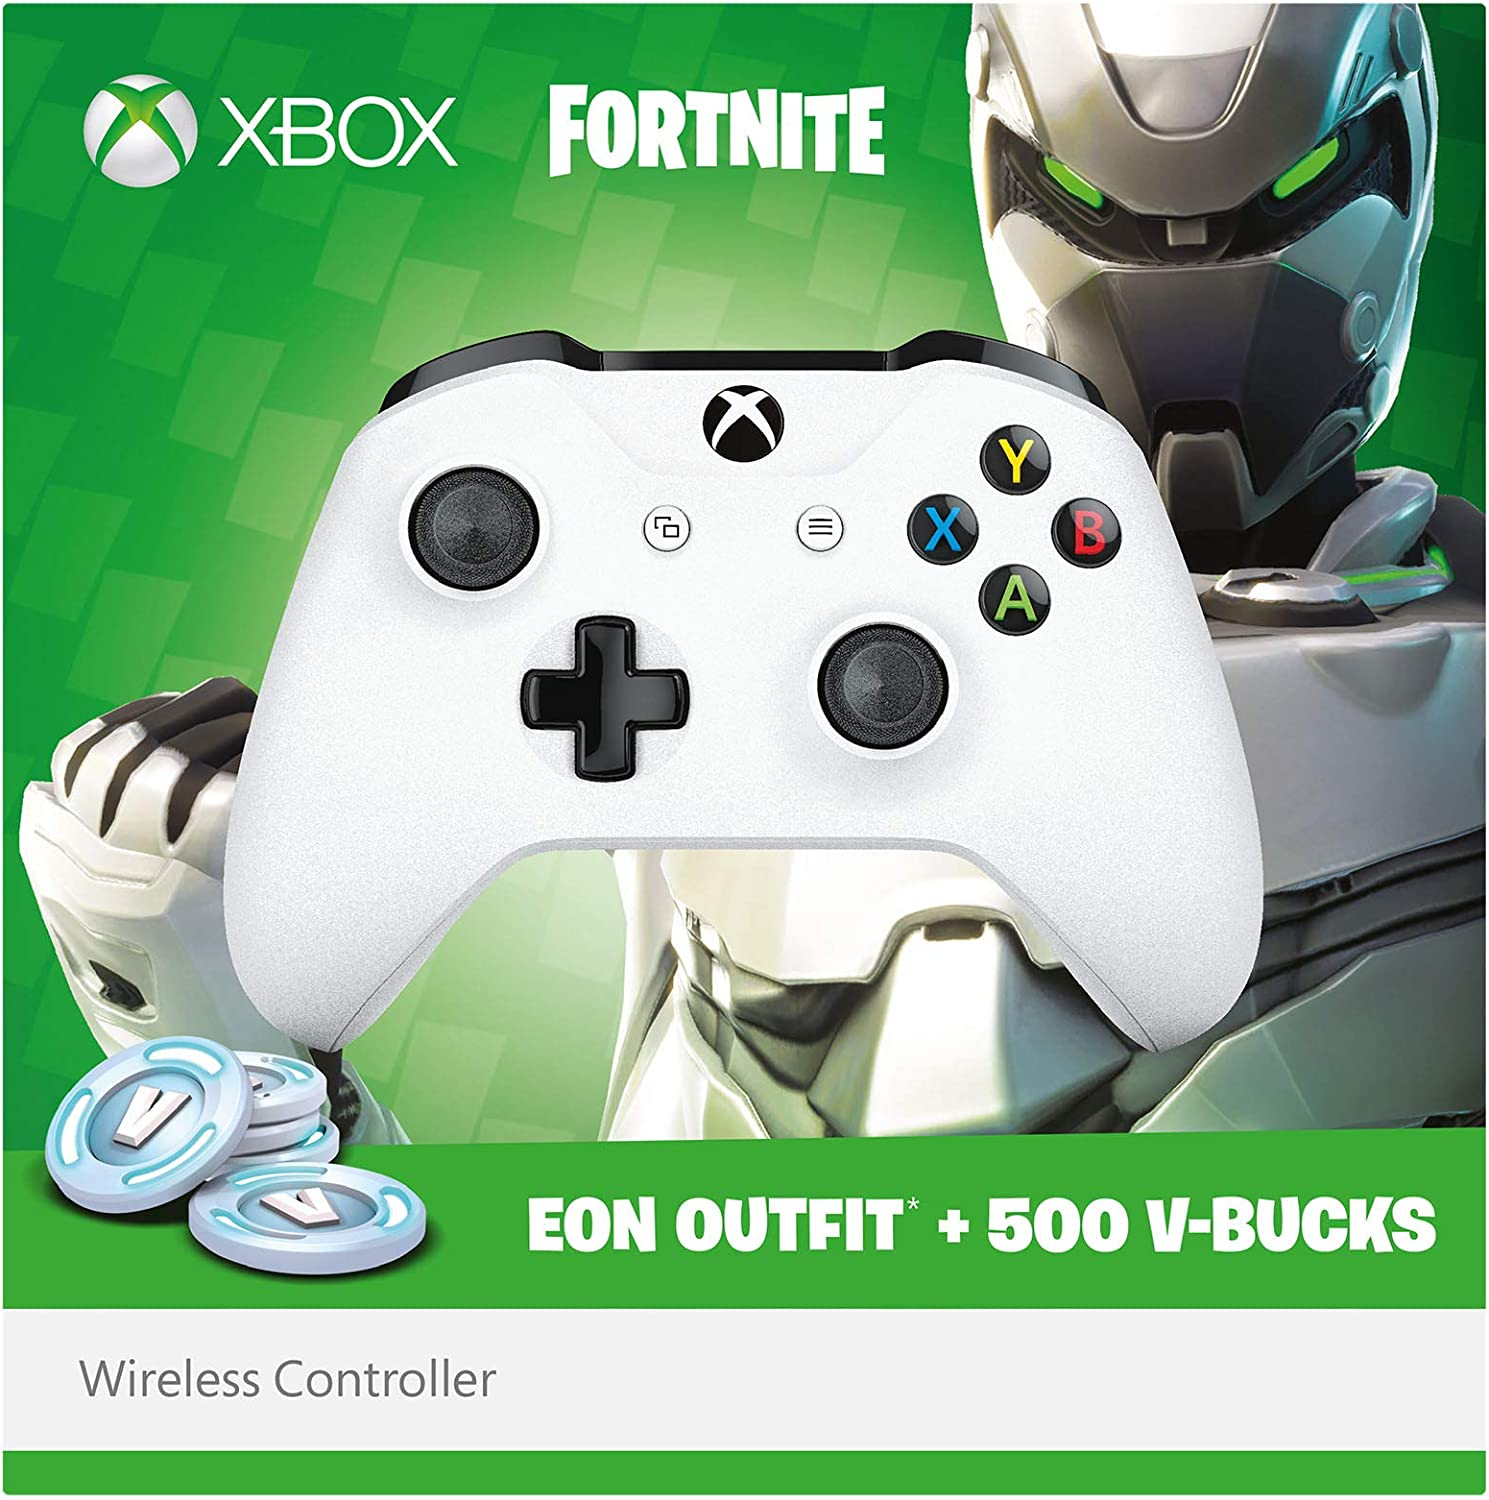 Xbox Wireless Controller - Fortnite Bundle (inkl. EON Outfit + 500 ...